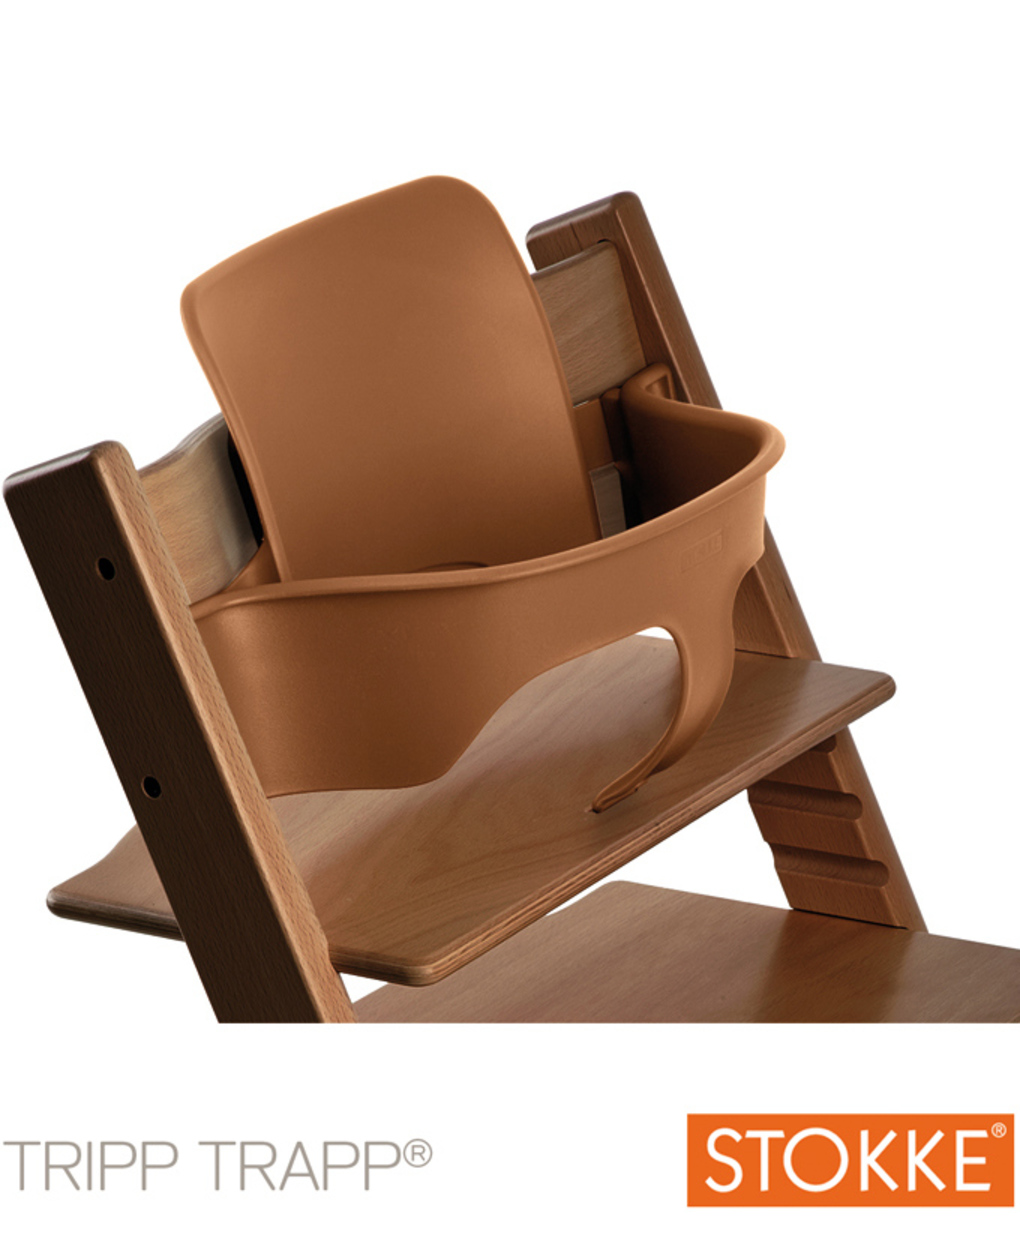 Stokke® baby set per tripp trapp® – walnut brown - Stokke